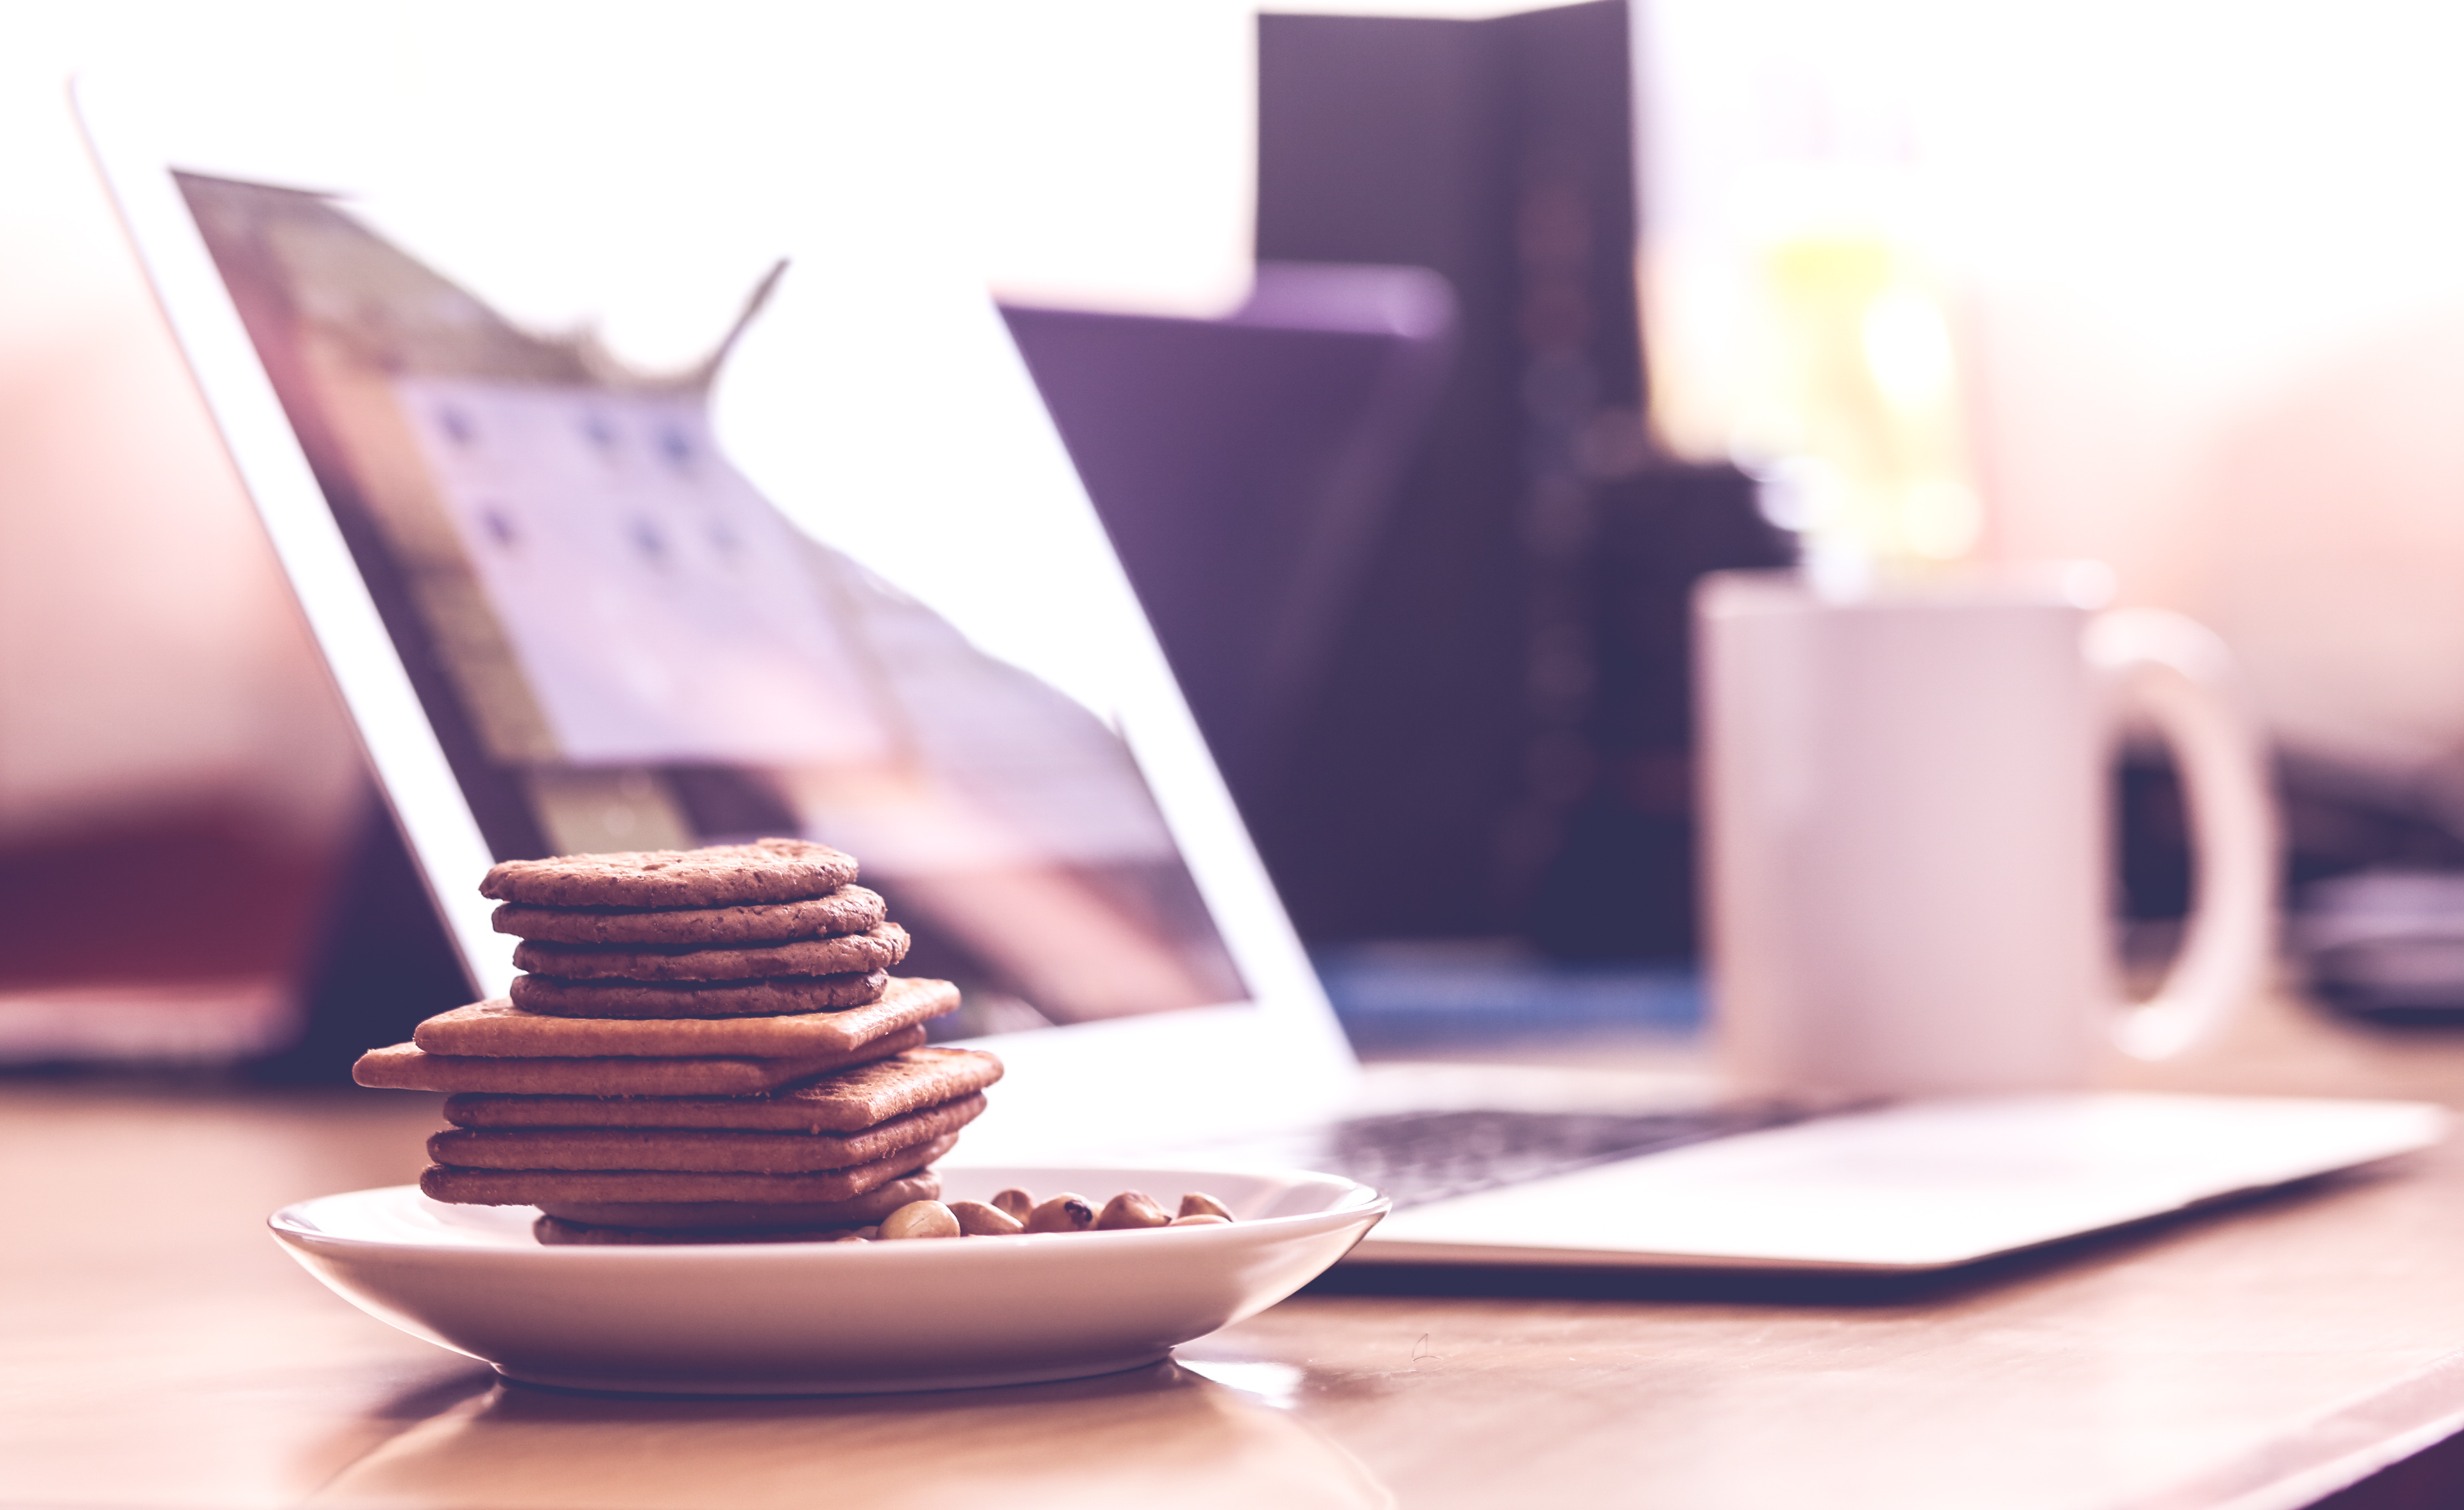 Biscuits In White Saucer Free Stock Photo